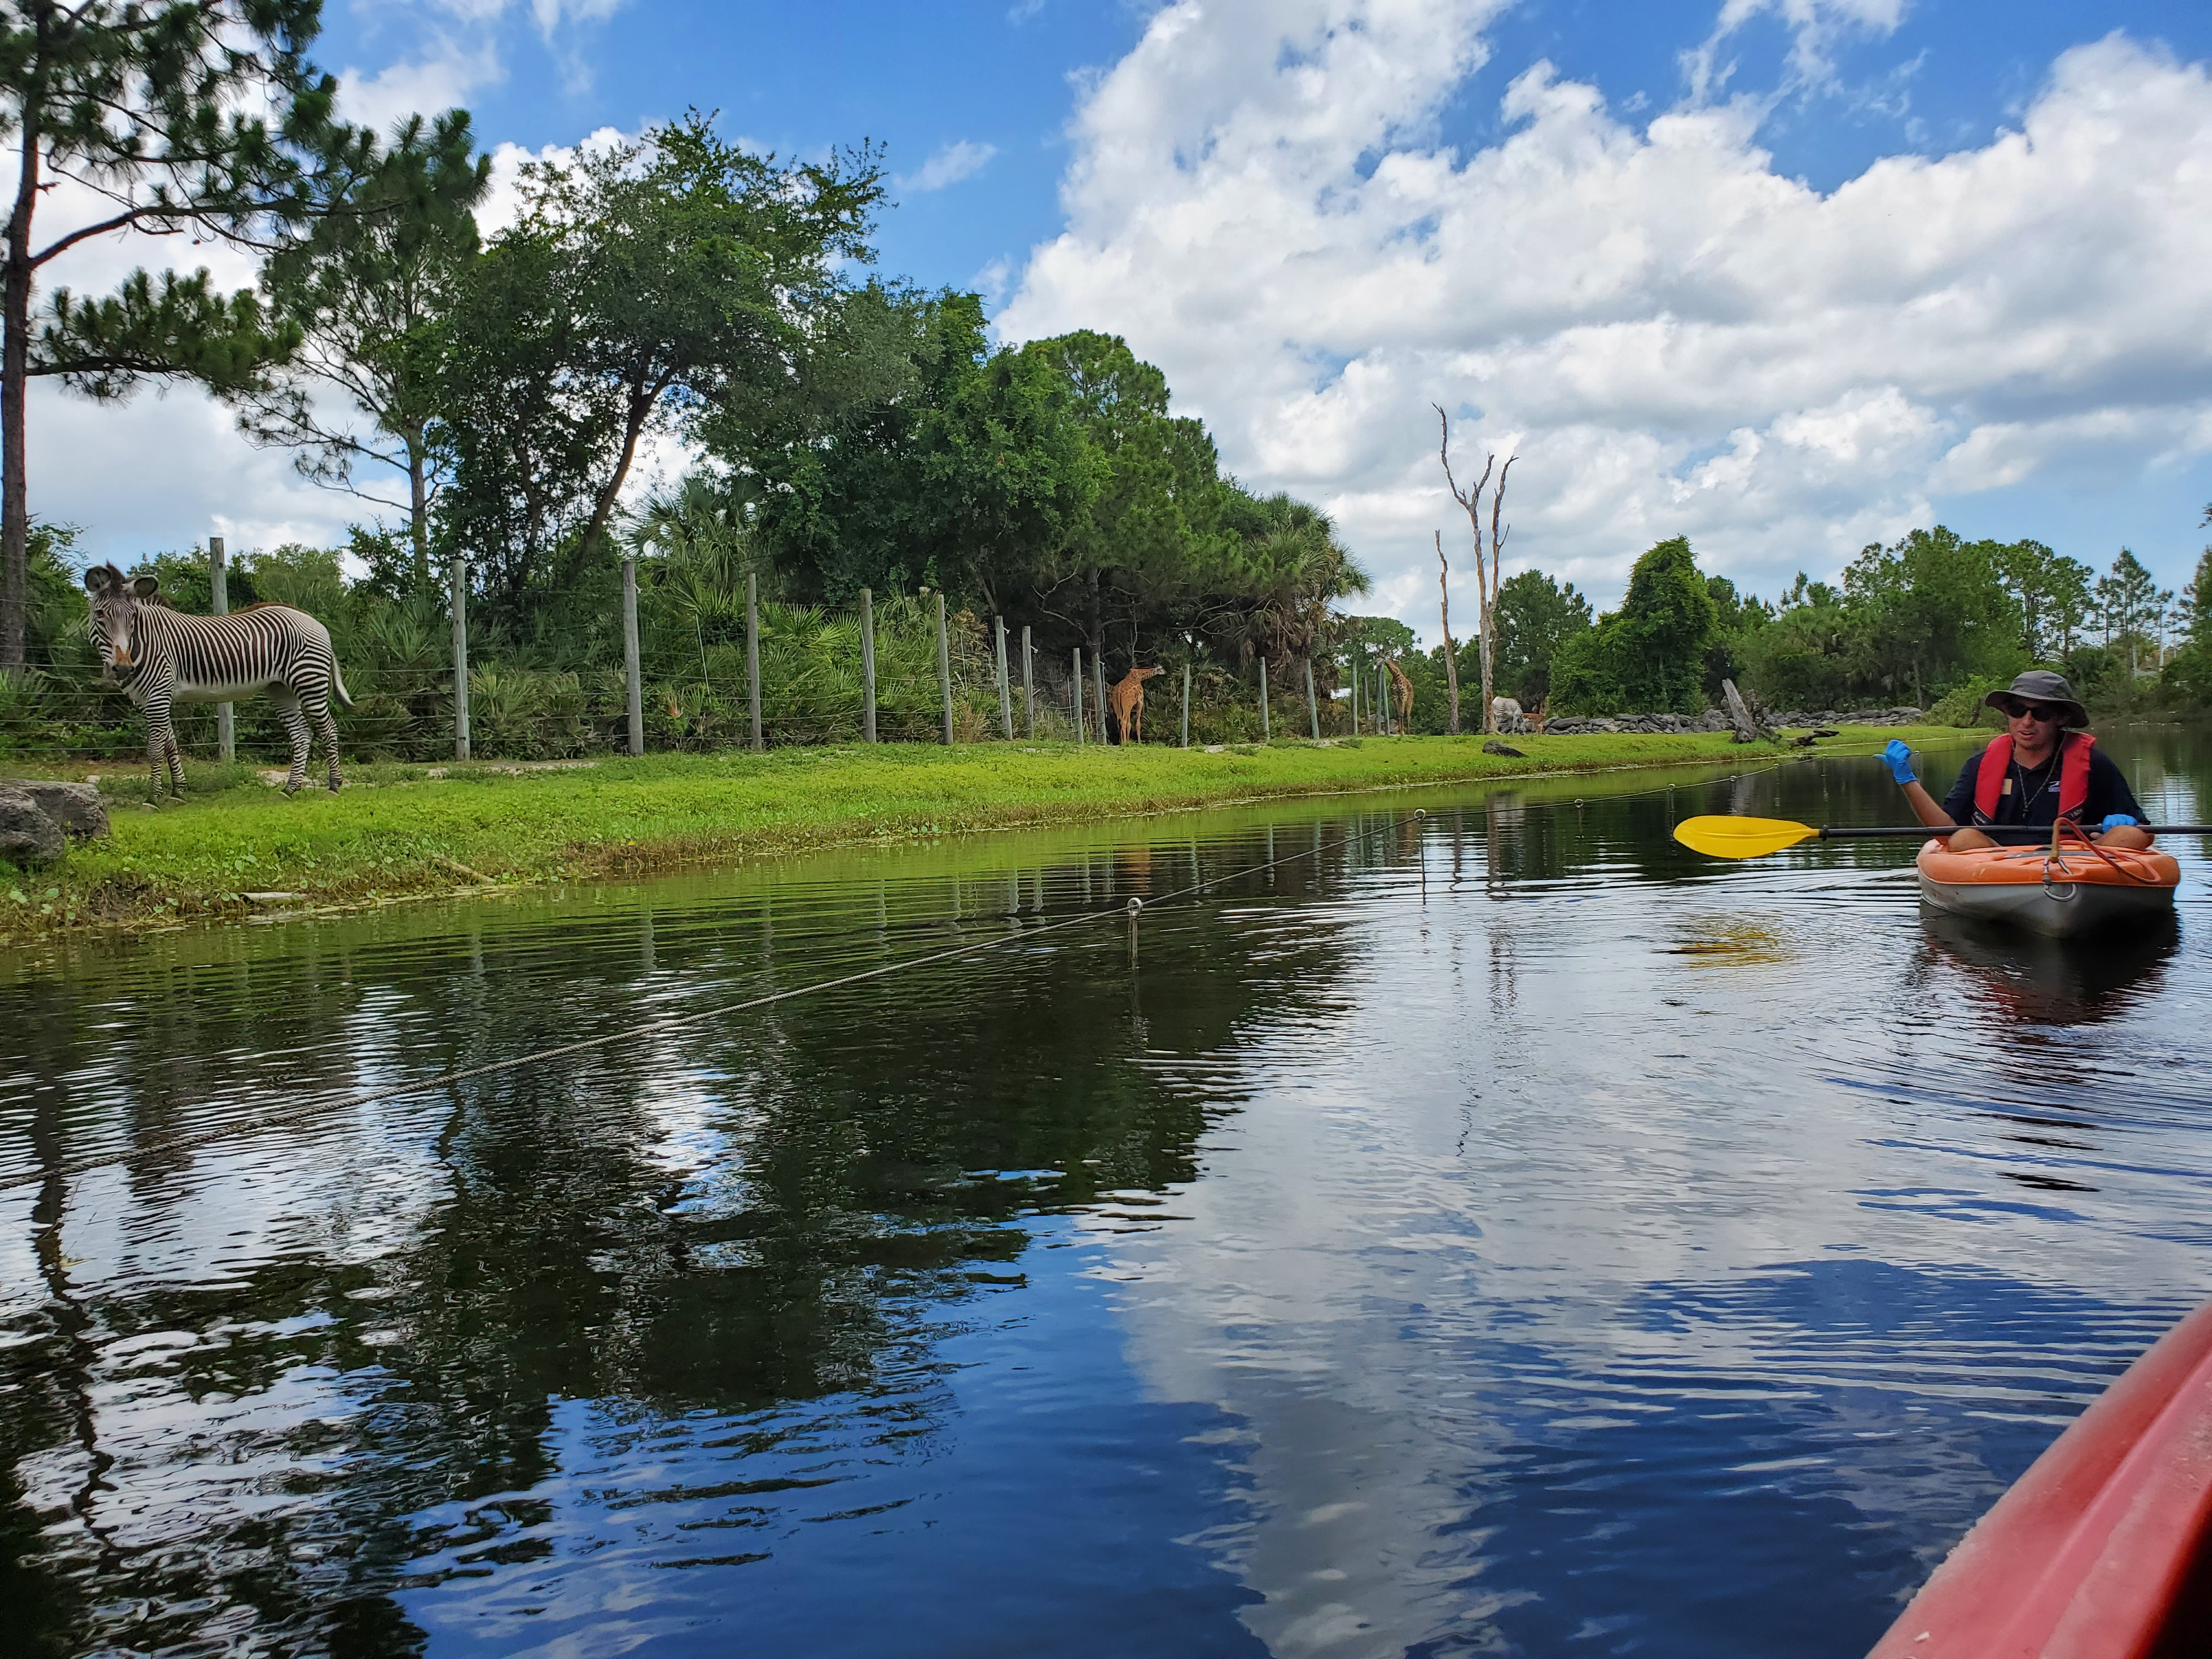 Kayaking at Brevard Zoo